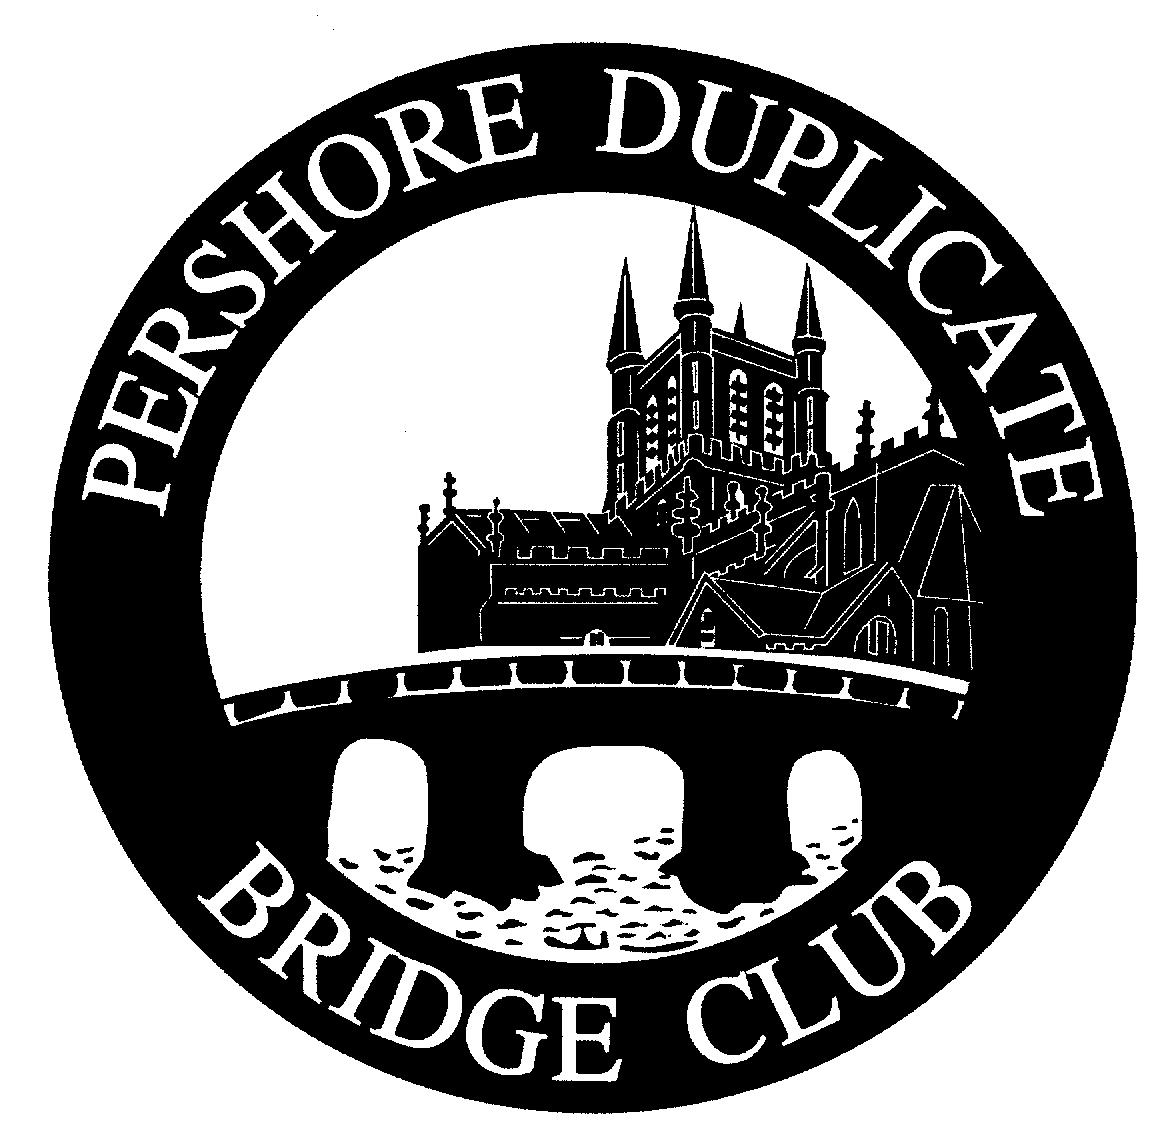 Pershore Duplicate Bridge Club